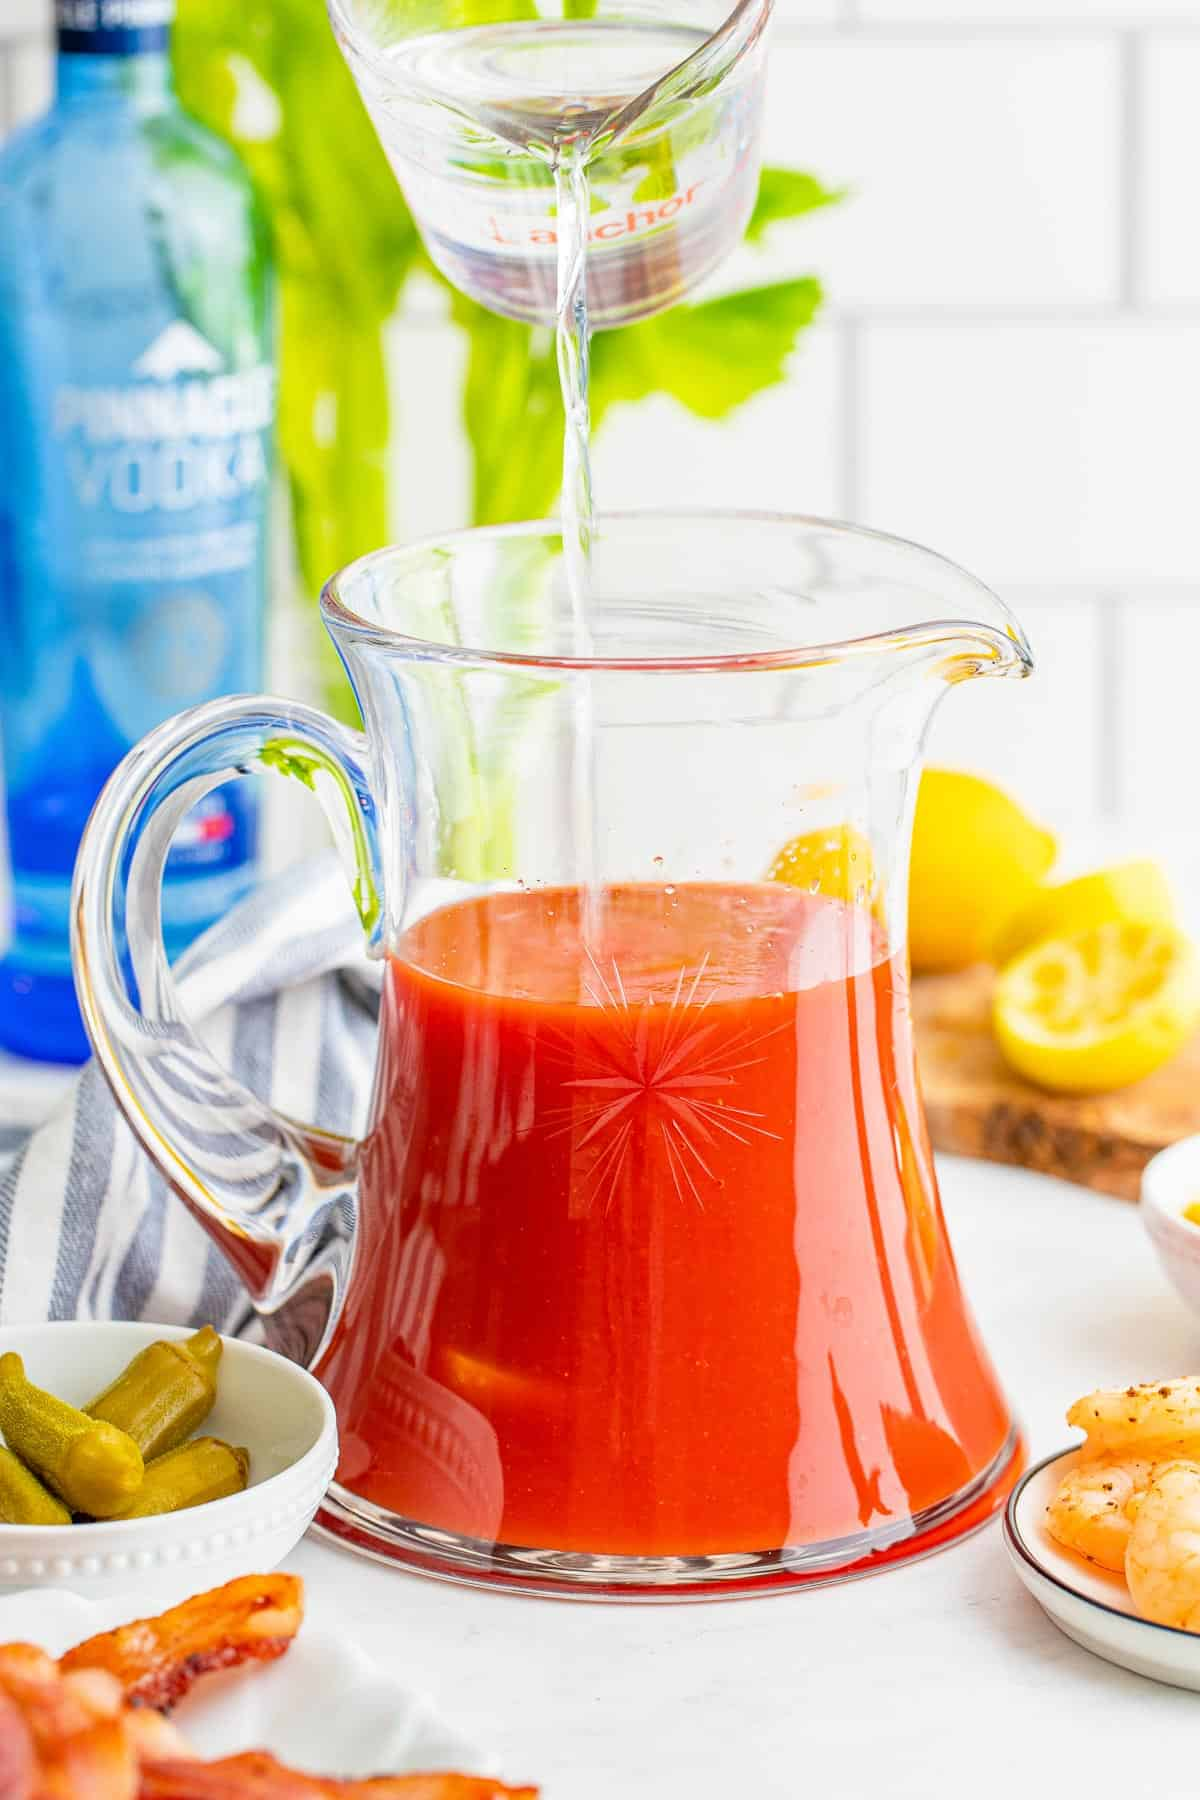 Vodka being poured into a pitcher of tomato juice.